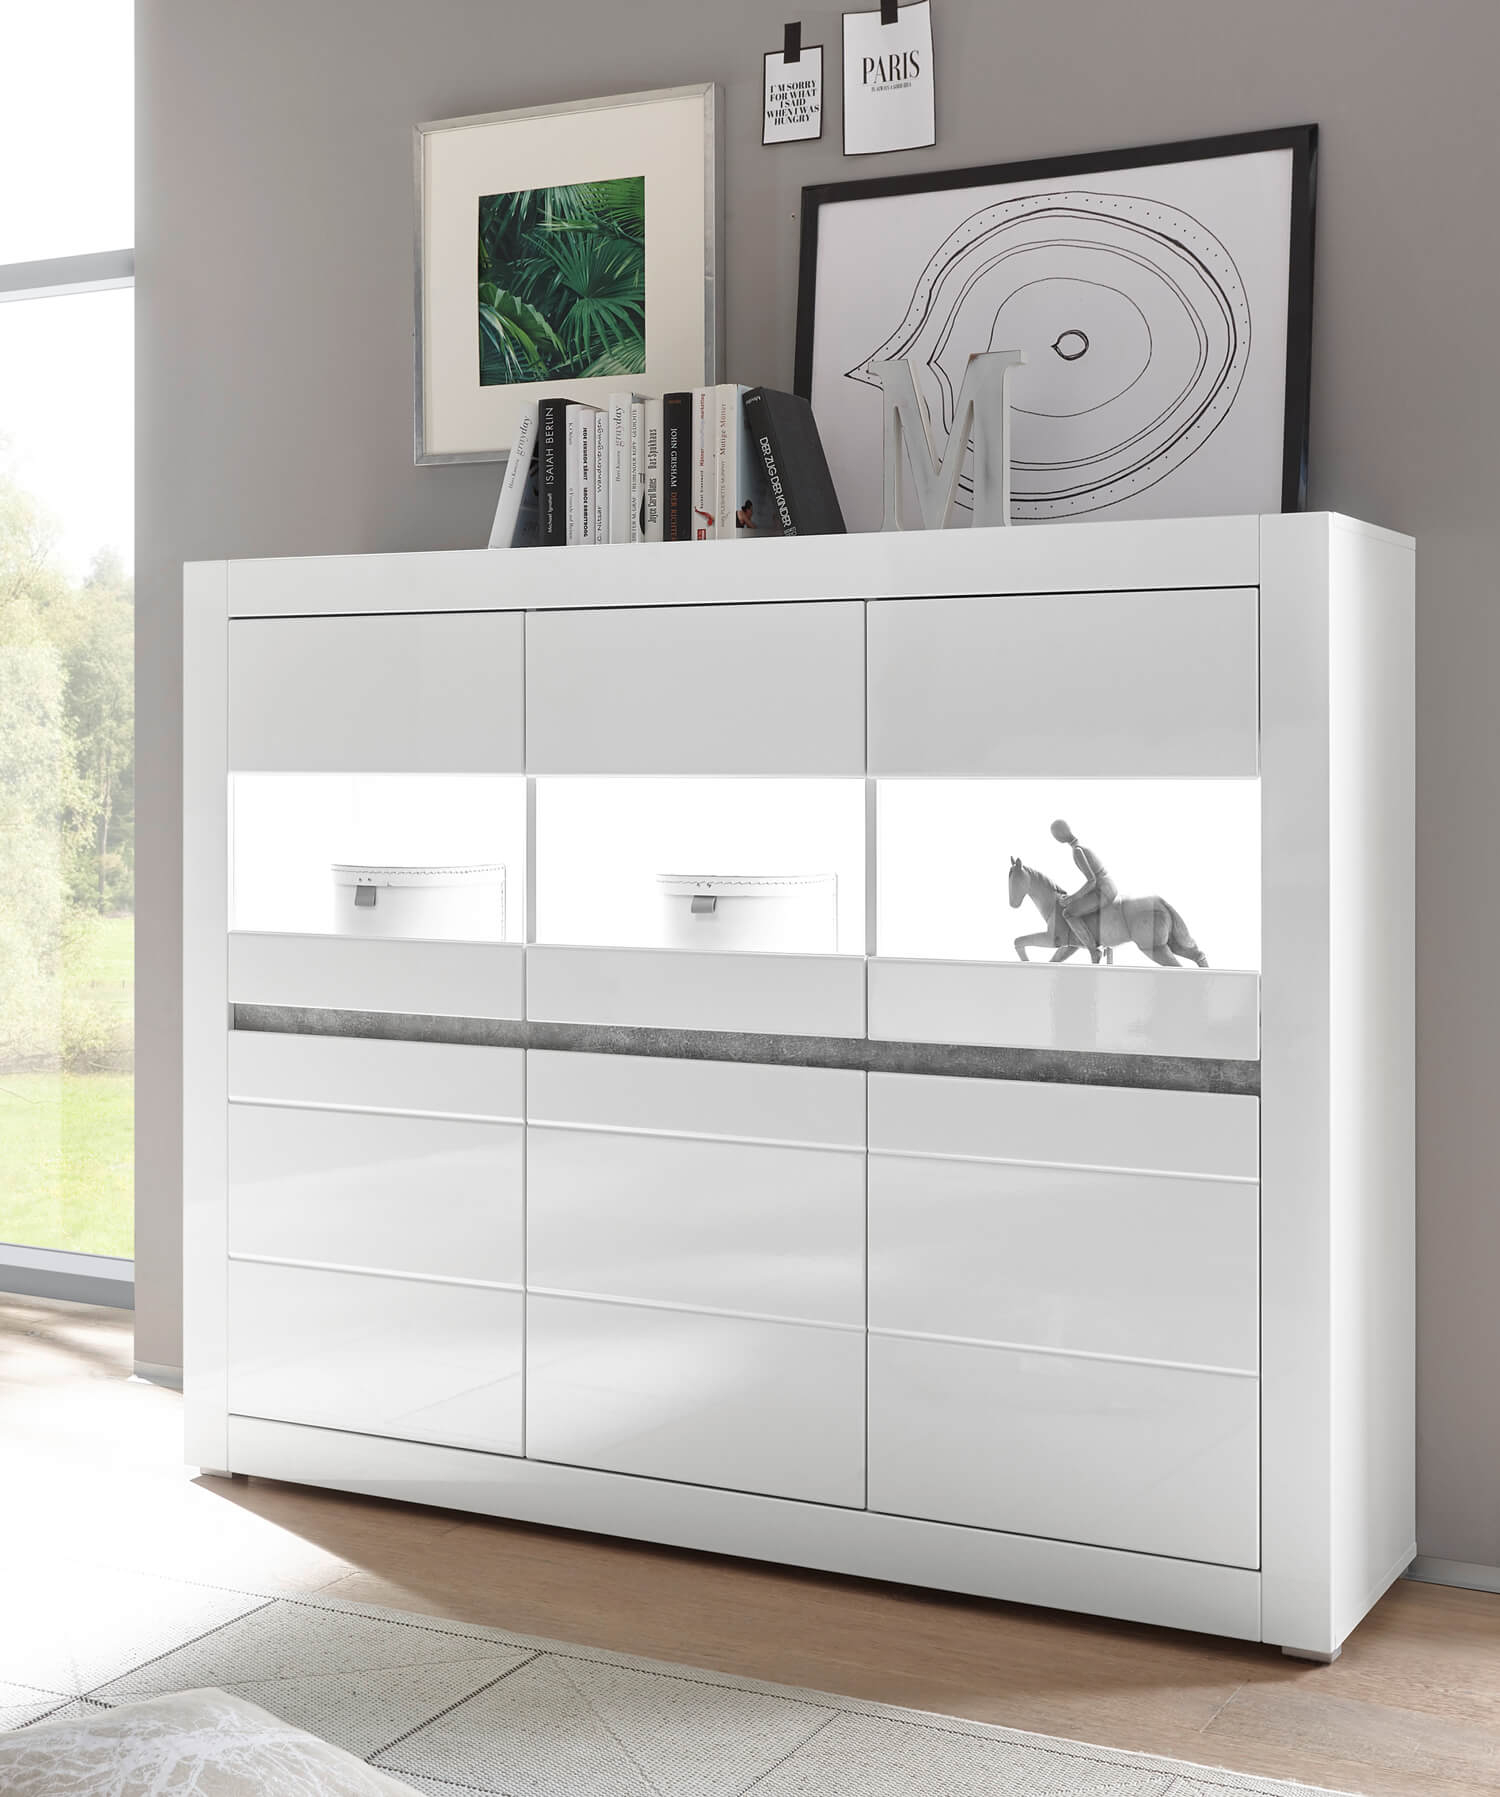 Highboard Kommode Highboard Kommode Anrichte Carat 164cm Weiß Weiß Hochglanz Beton Led Neu